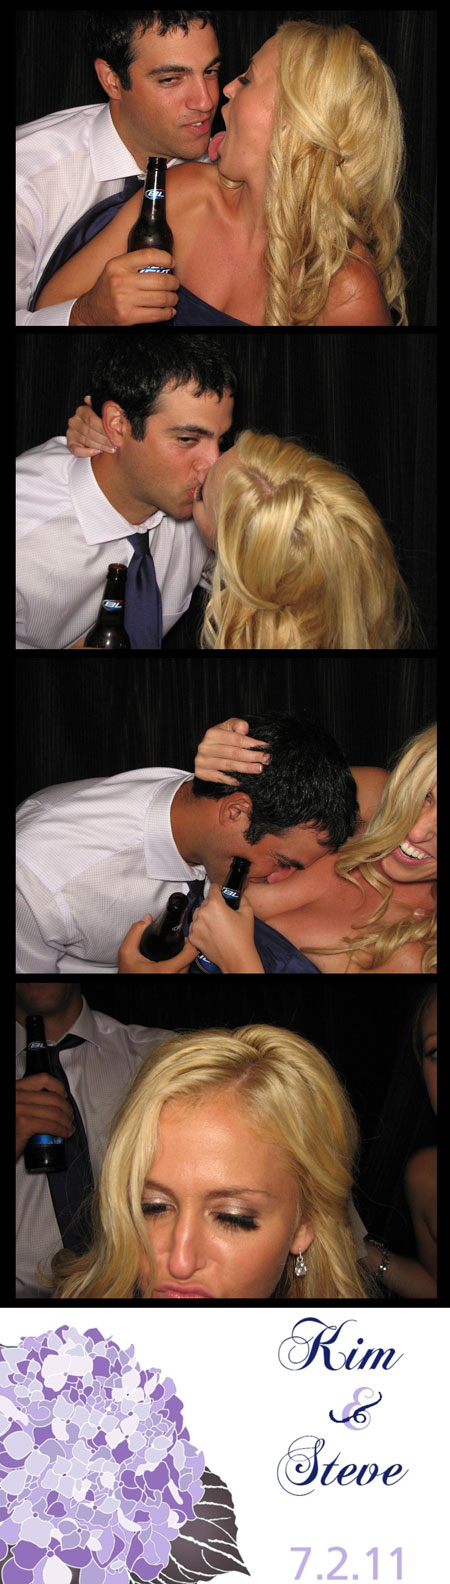 Drunk Kissing in a Photobooth